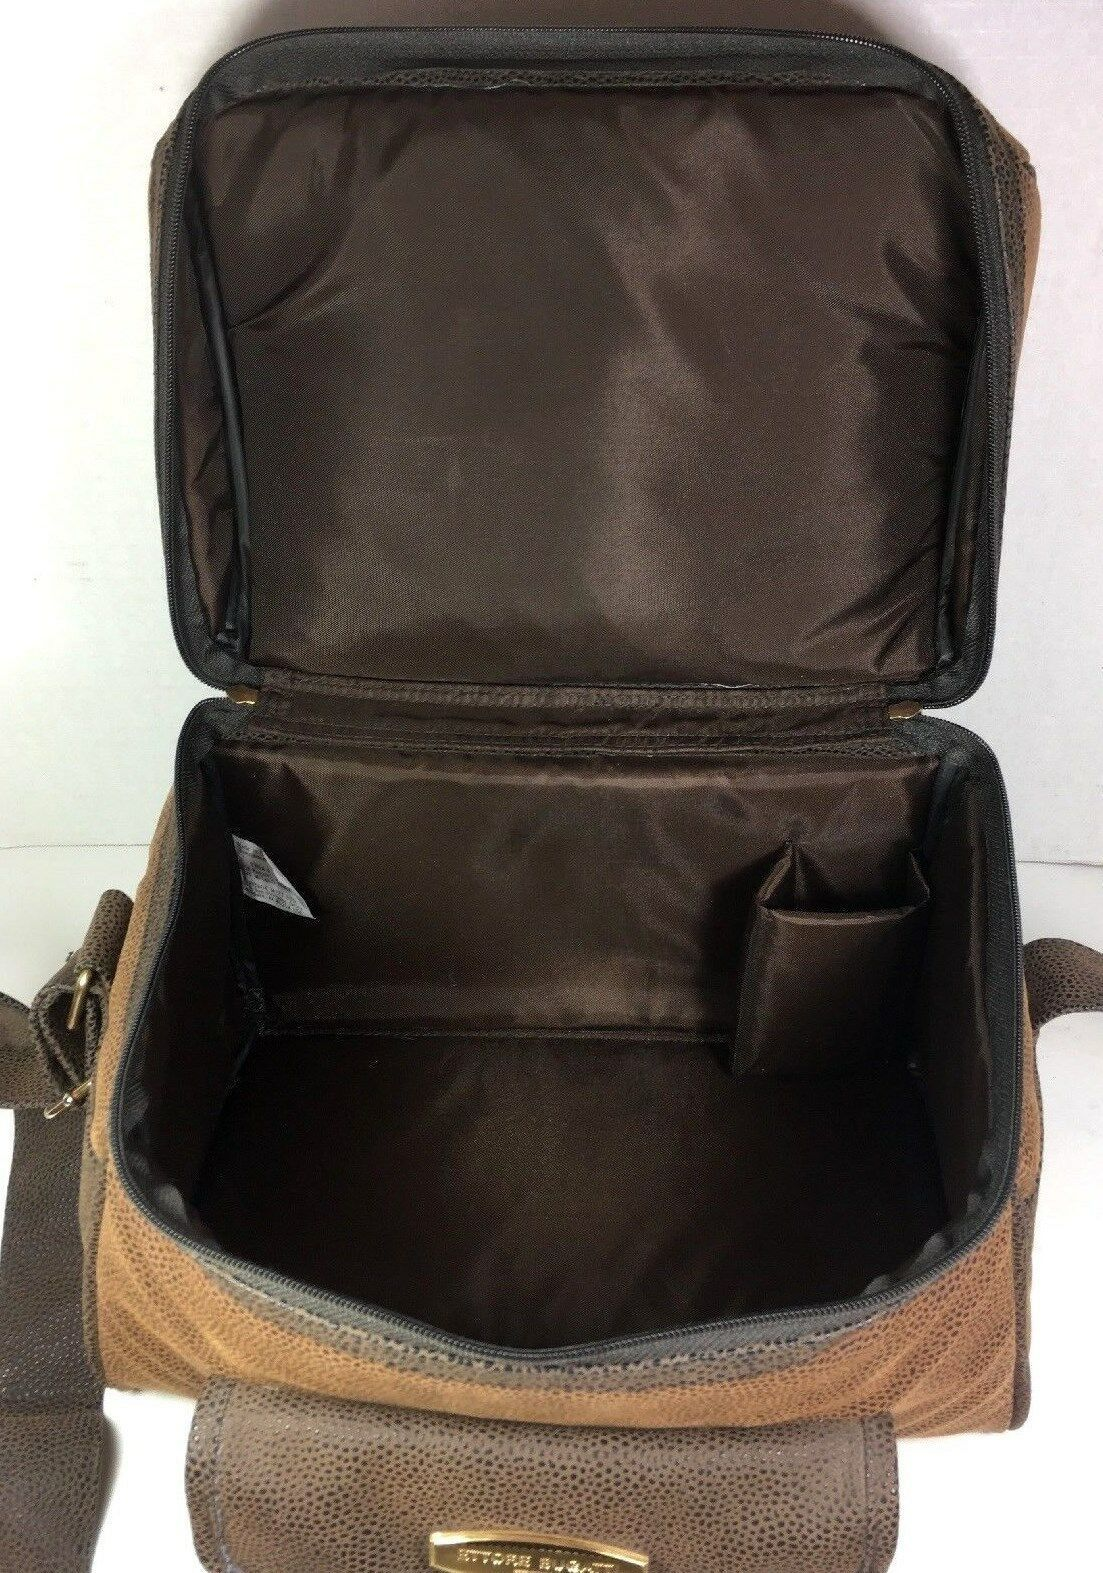 Ettore Bugatti Vintage Brown Faux Leather Travel Carry On Bag